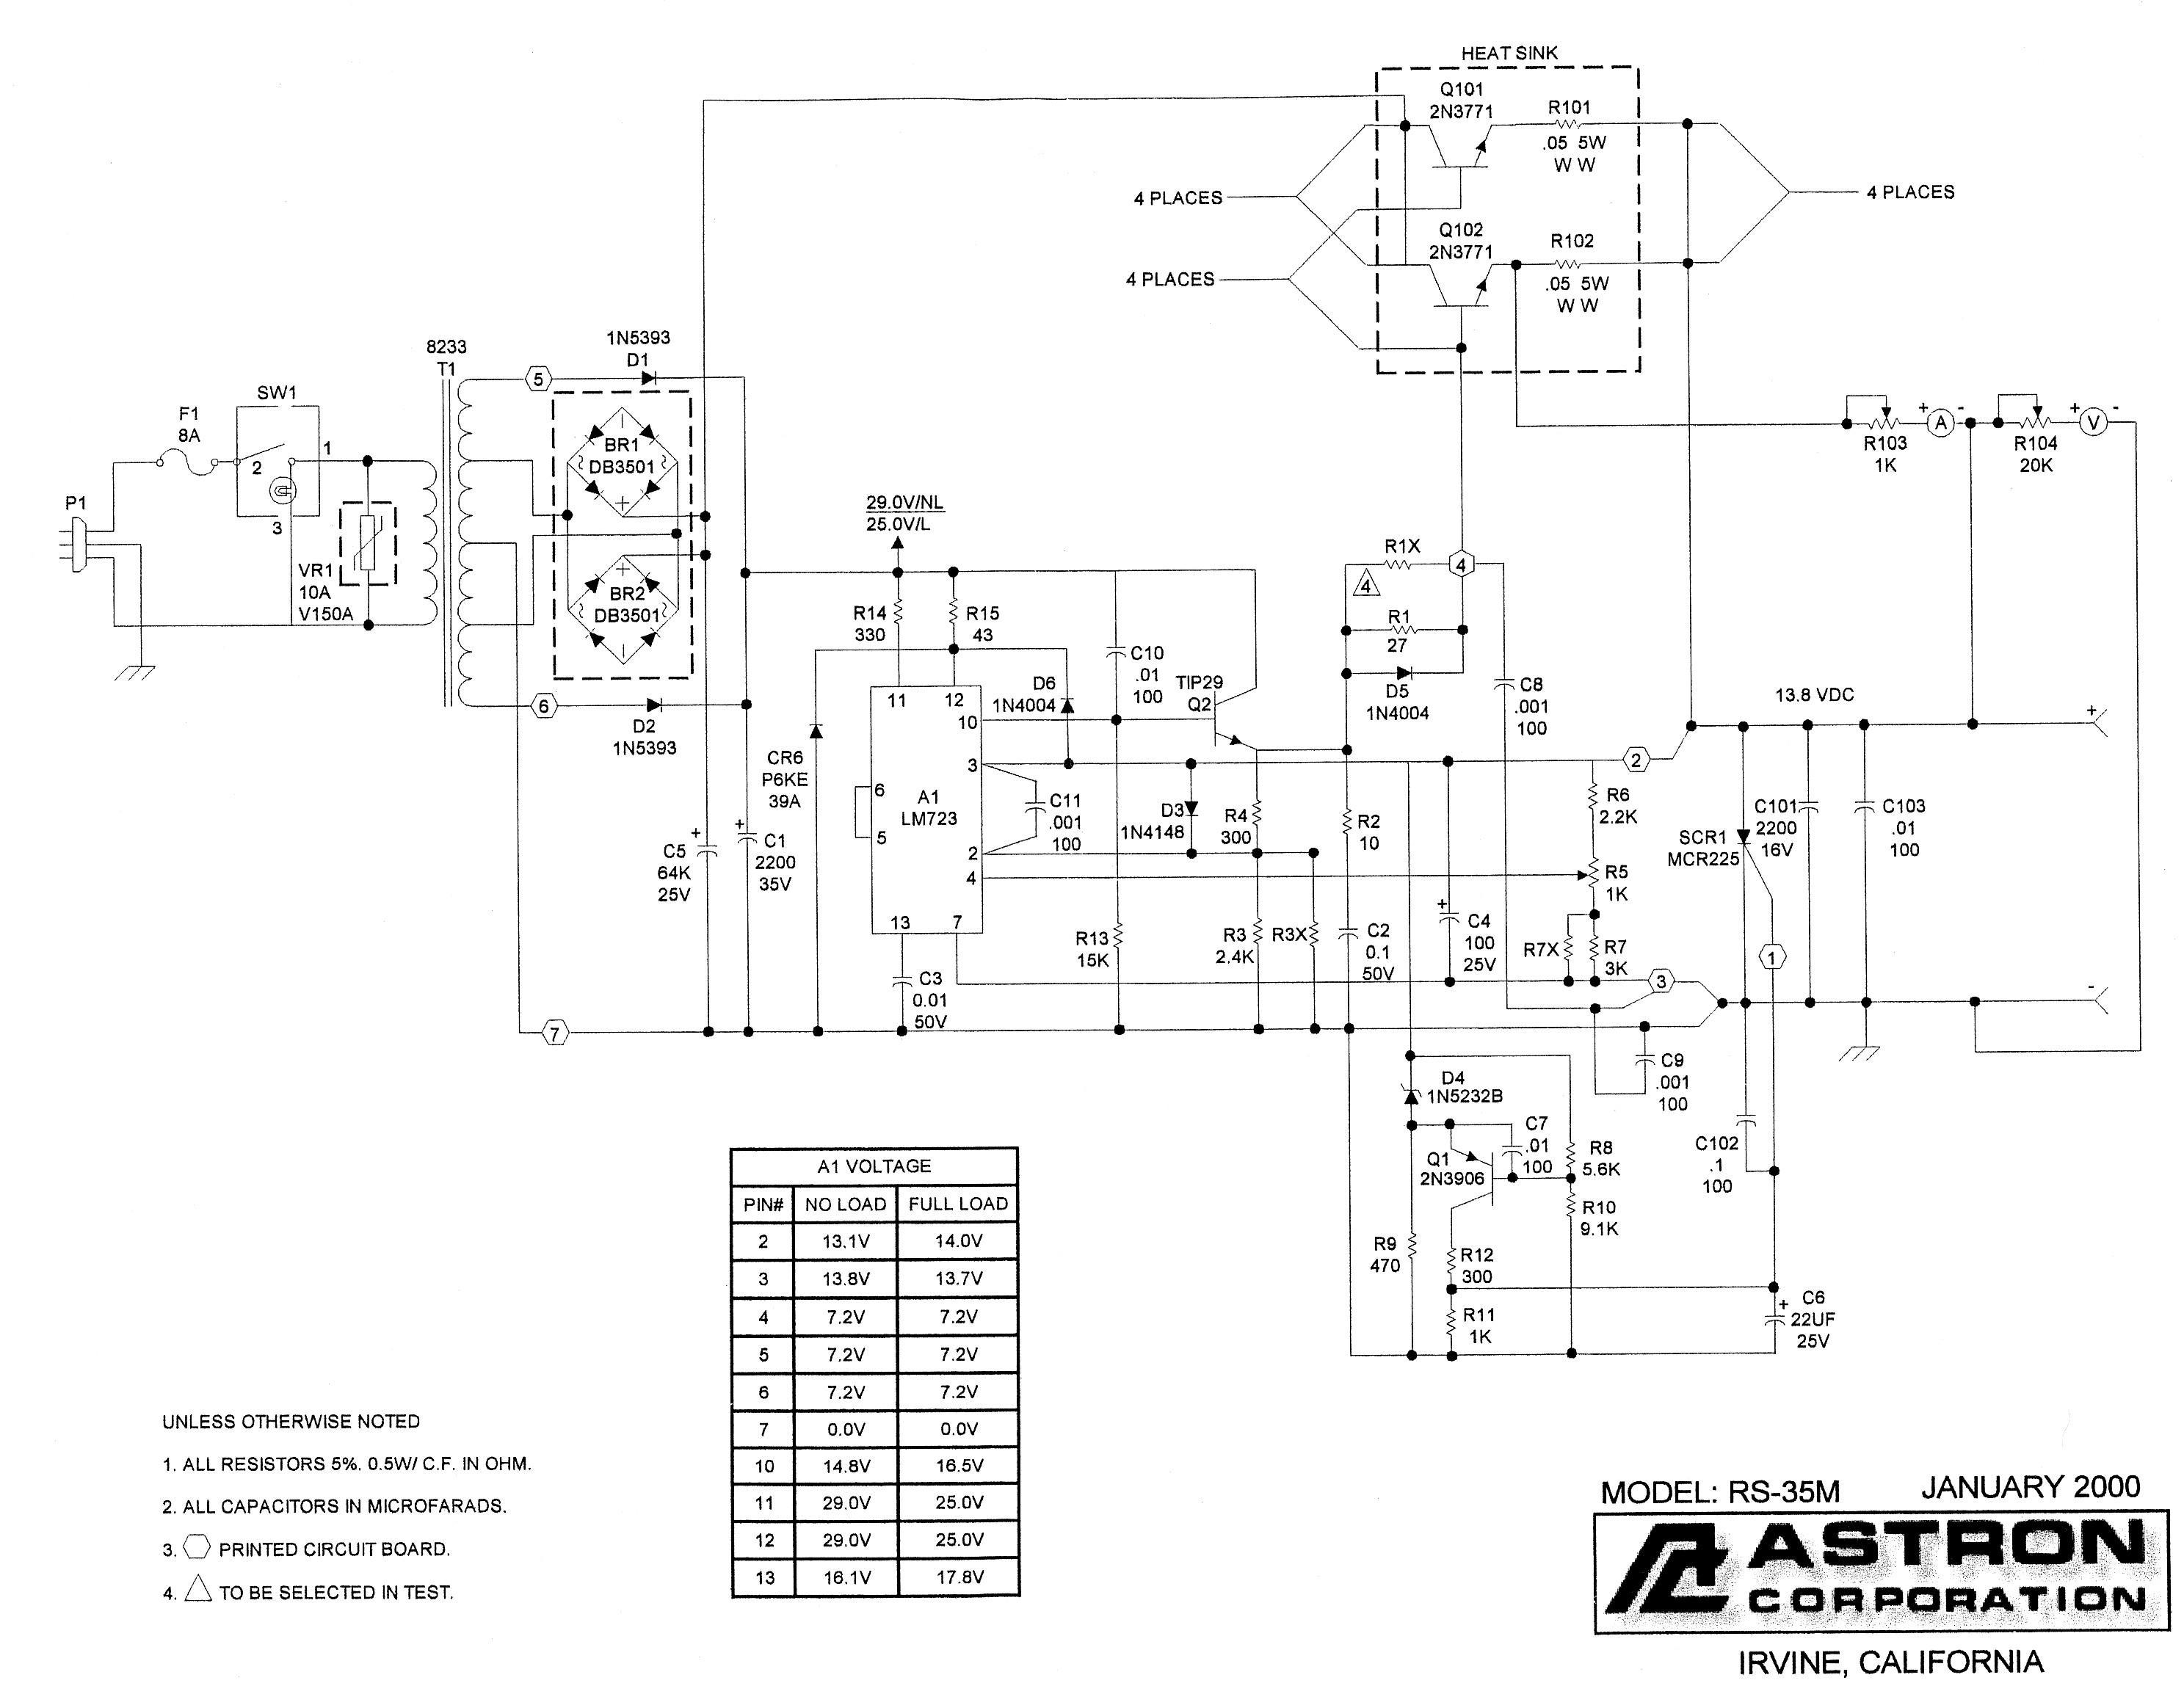 1996 dodge neon stereo wiring diagram star delta connection motor 2000 plymouth harness auto